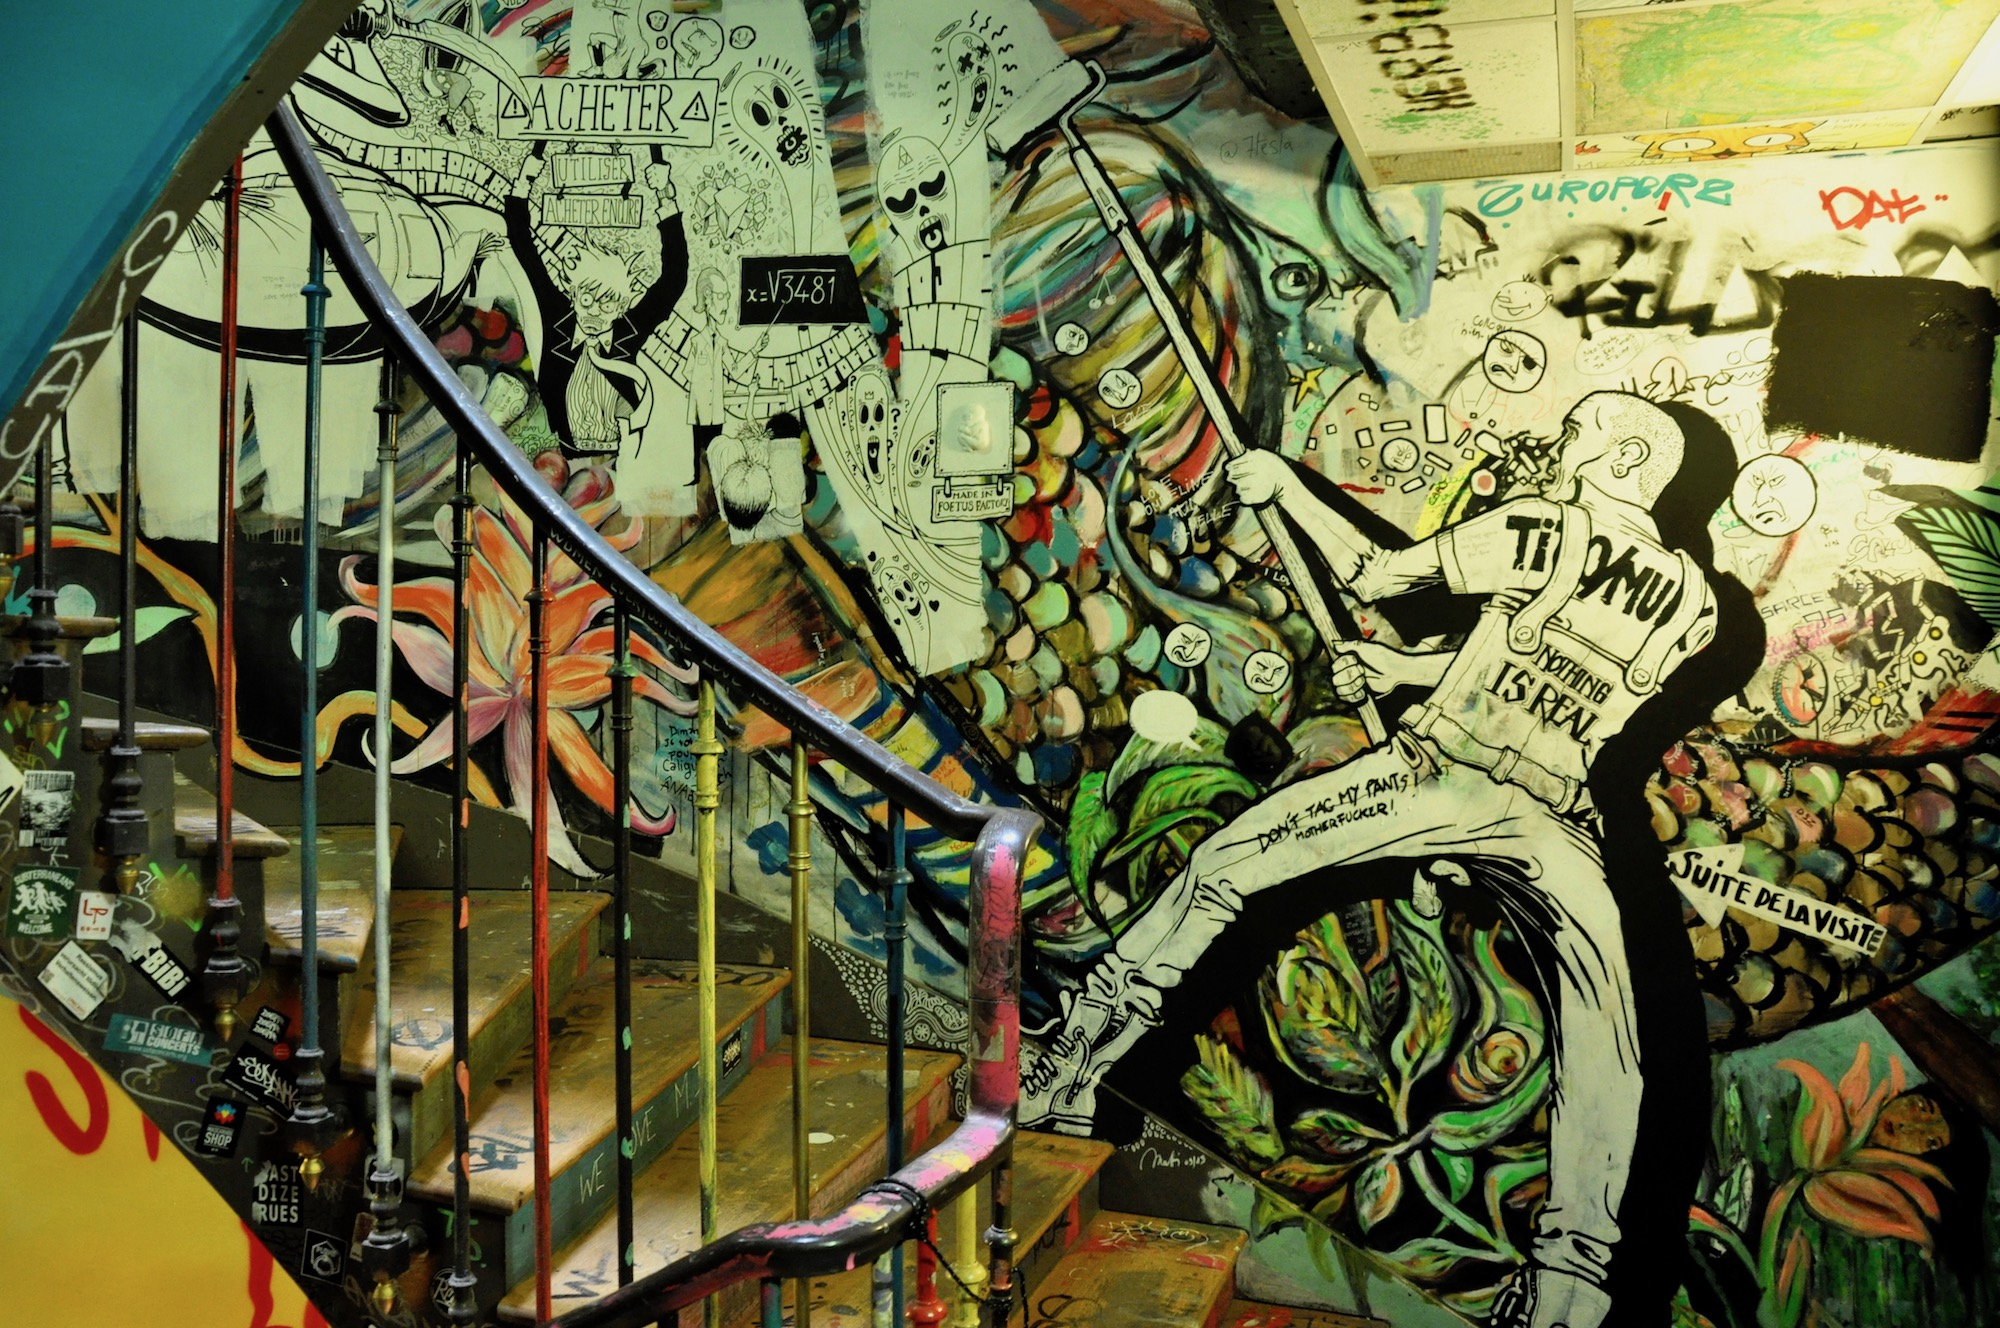 HiP Paris Blog discovers the many artist squats in Paris like the 59 Rivoli, a long-standing squat that's now legal and loved for its artworks covering the walls even in the stairwell.